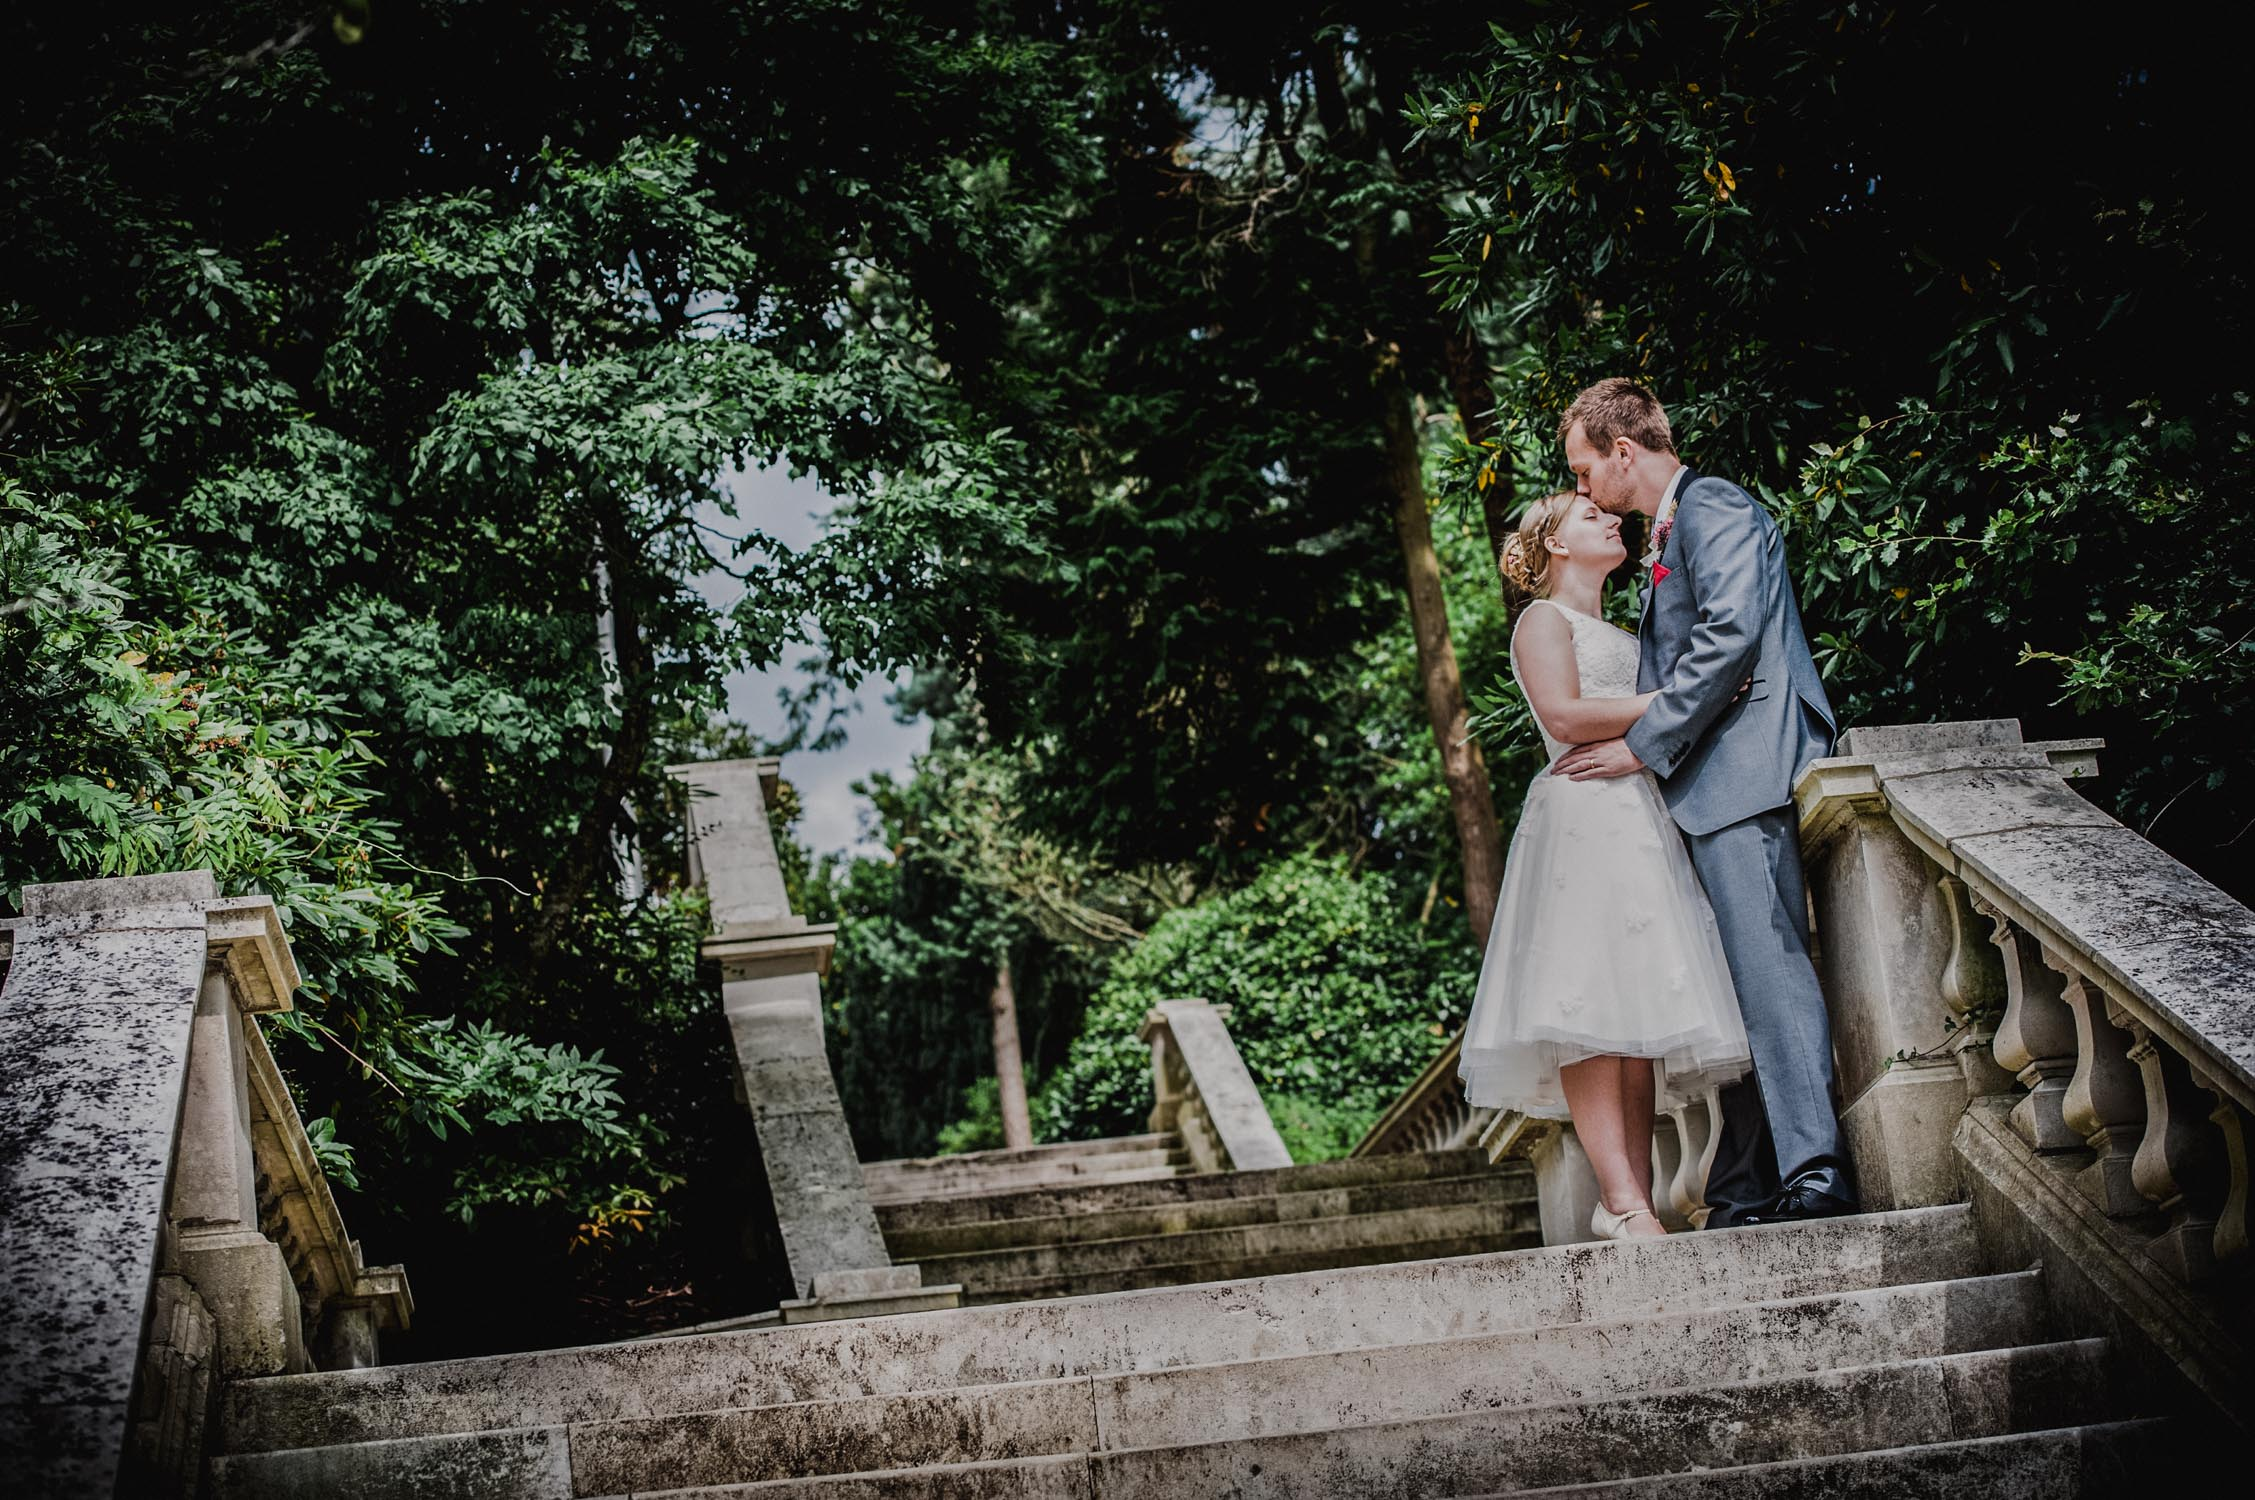 Reed hall wedding photographer in Exeter capturing intimate bride and groom images. Devon wedding photography